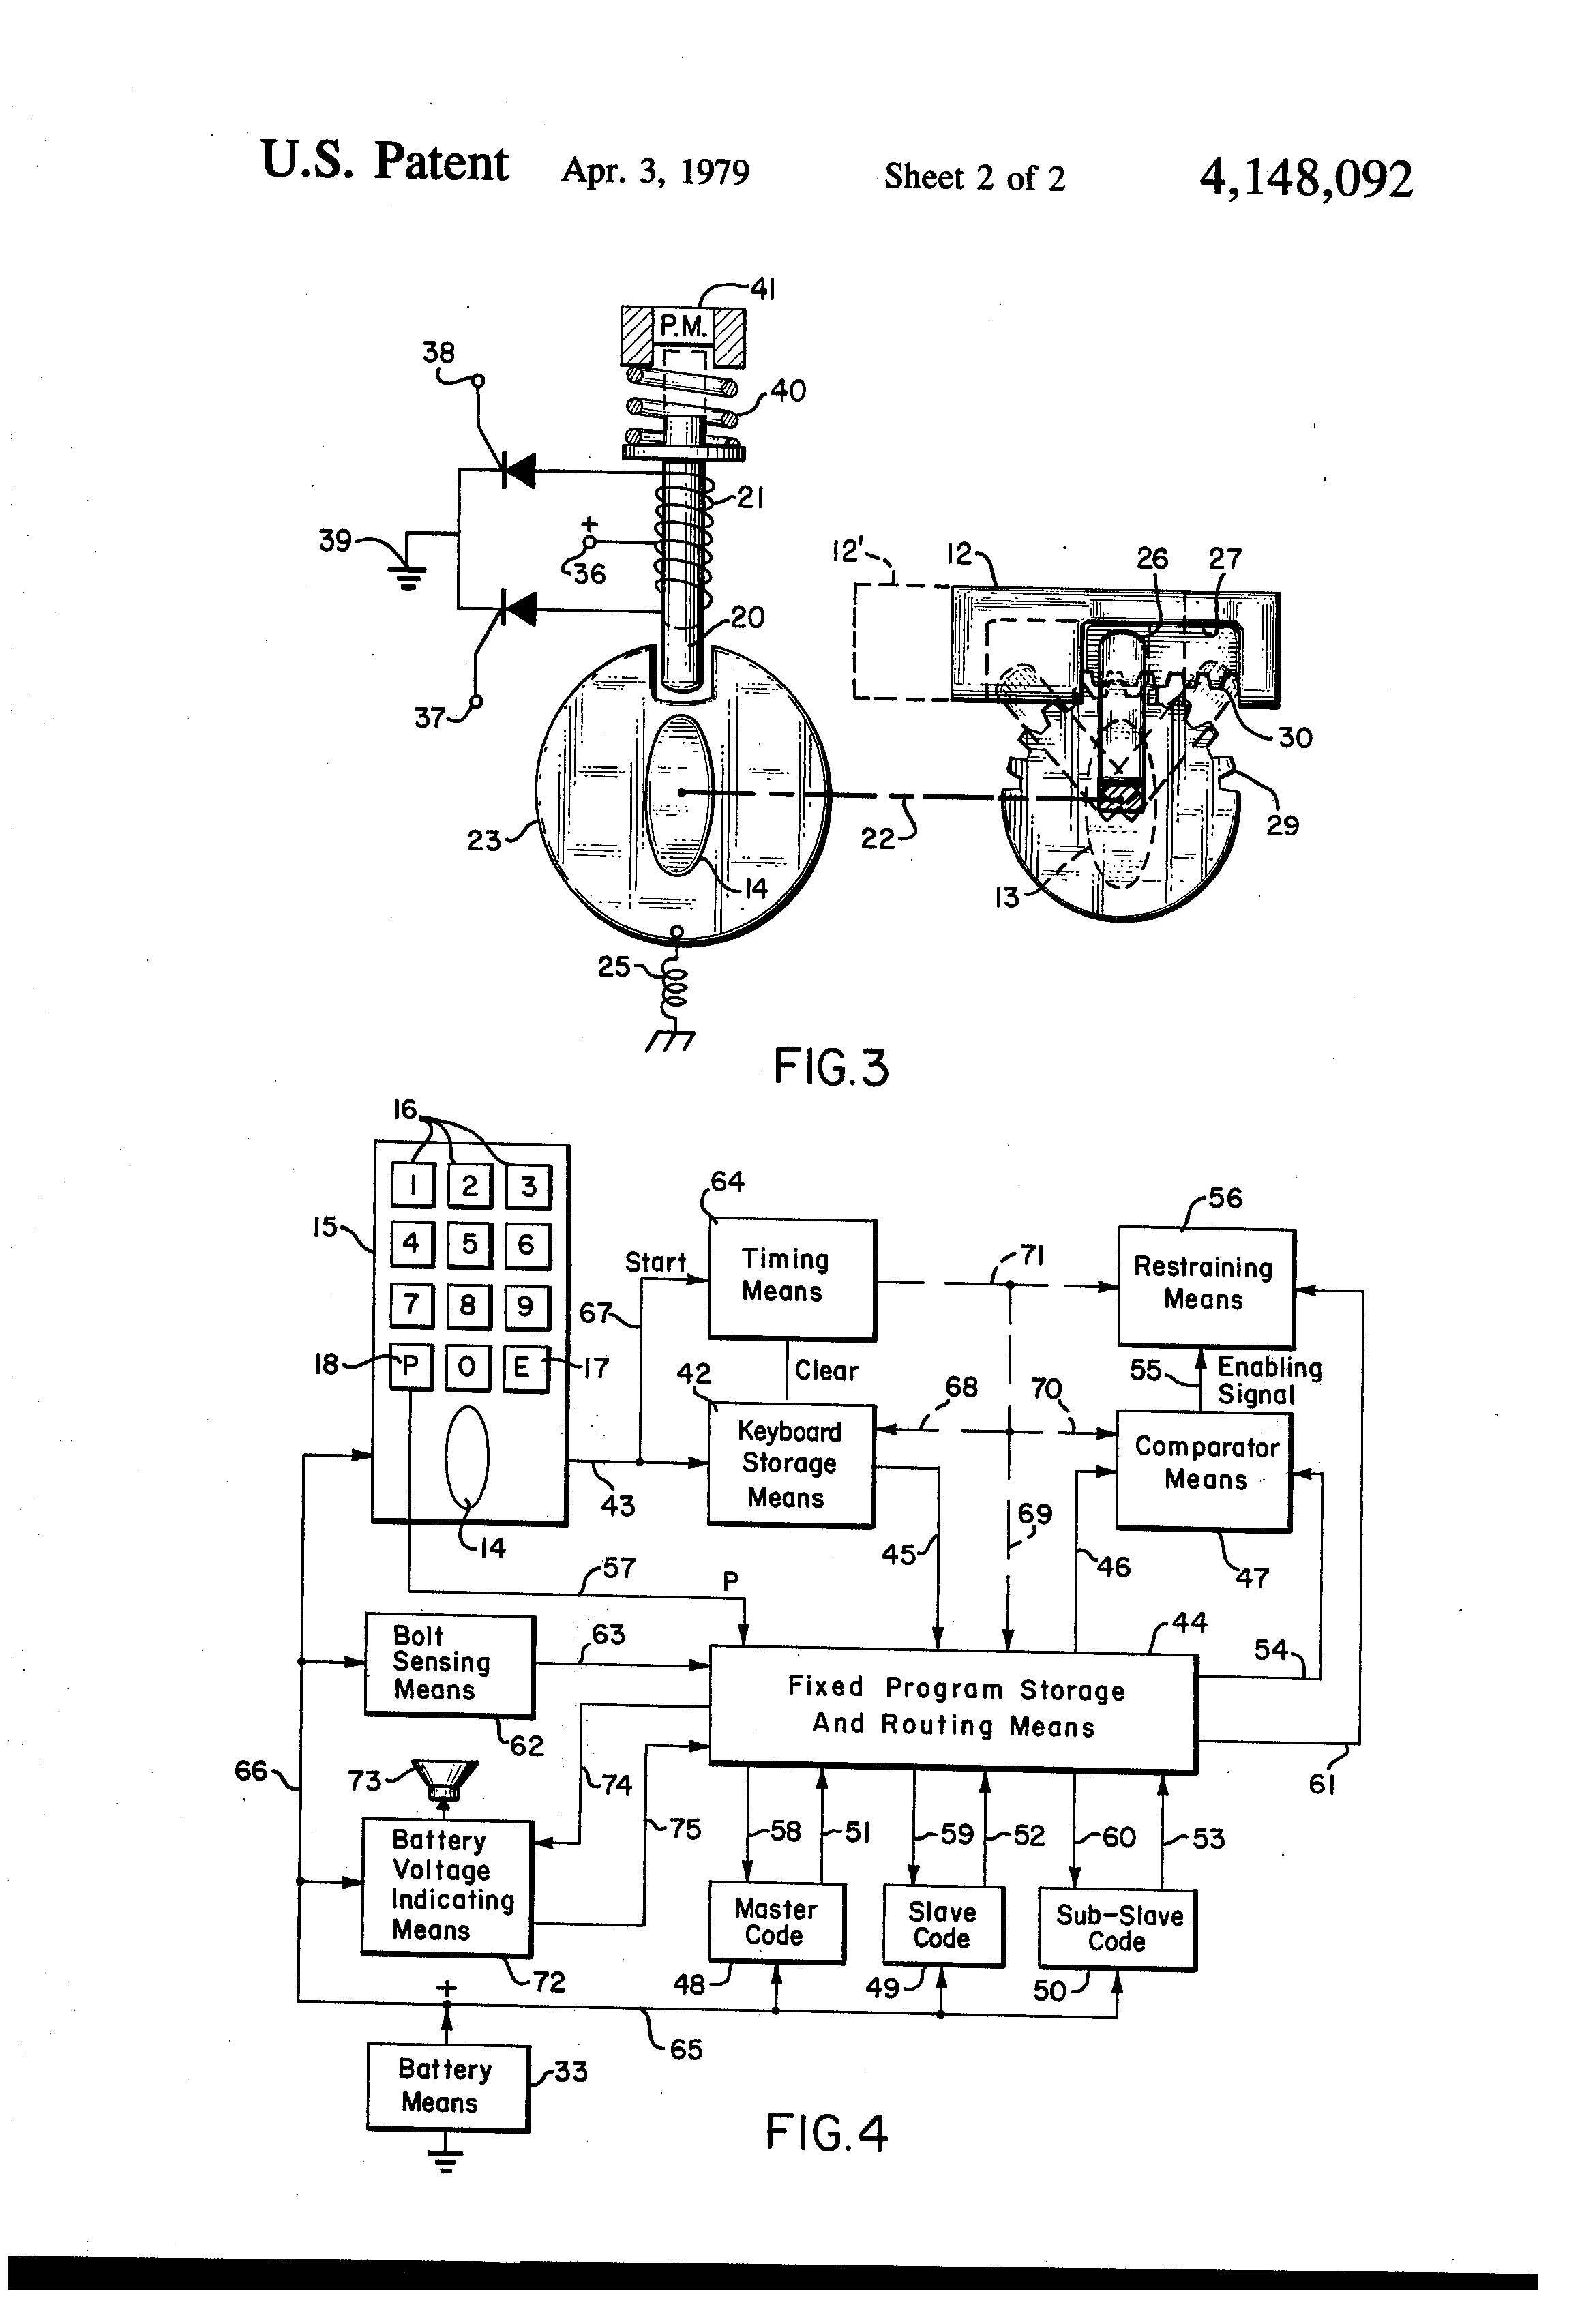 Door Lock Drawing At Free For Personal Use Honda Civic Central Locking Wiring Diagram 2320x3408 Patent Us4148092 Electronic Combination With Dead Bolt